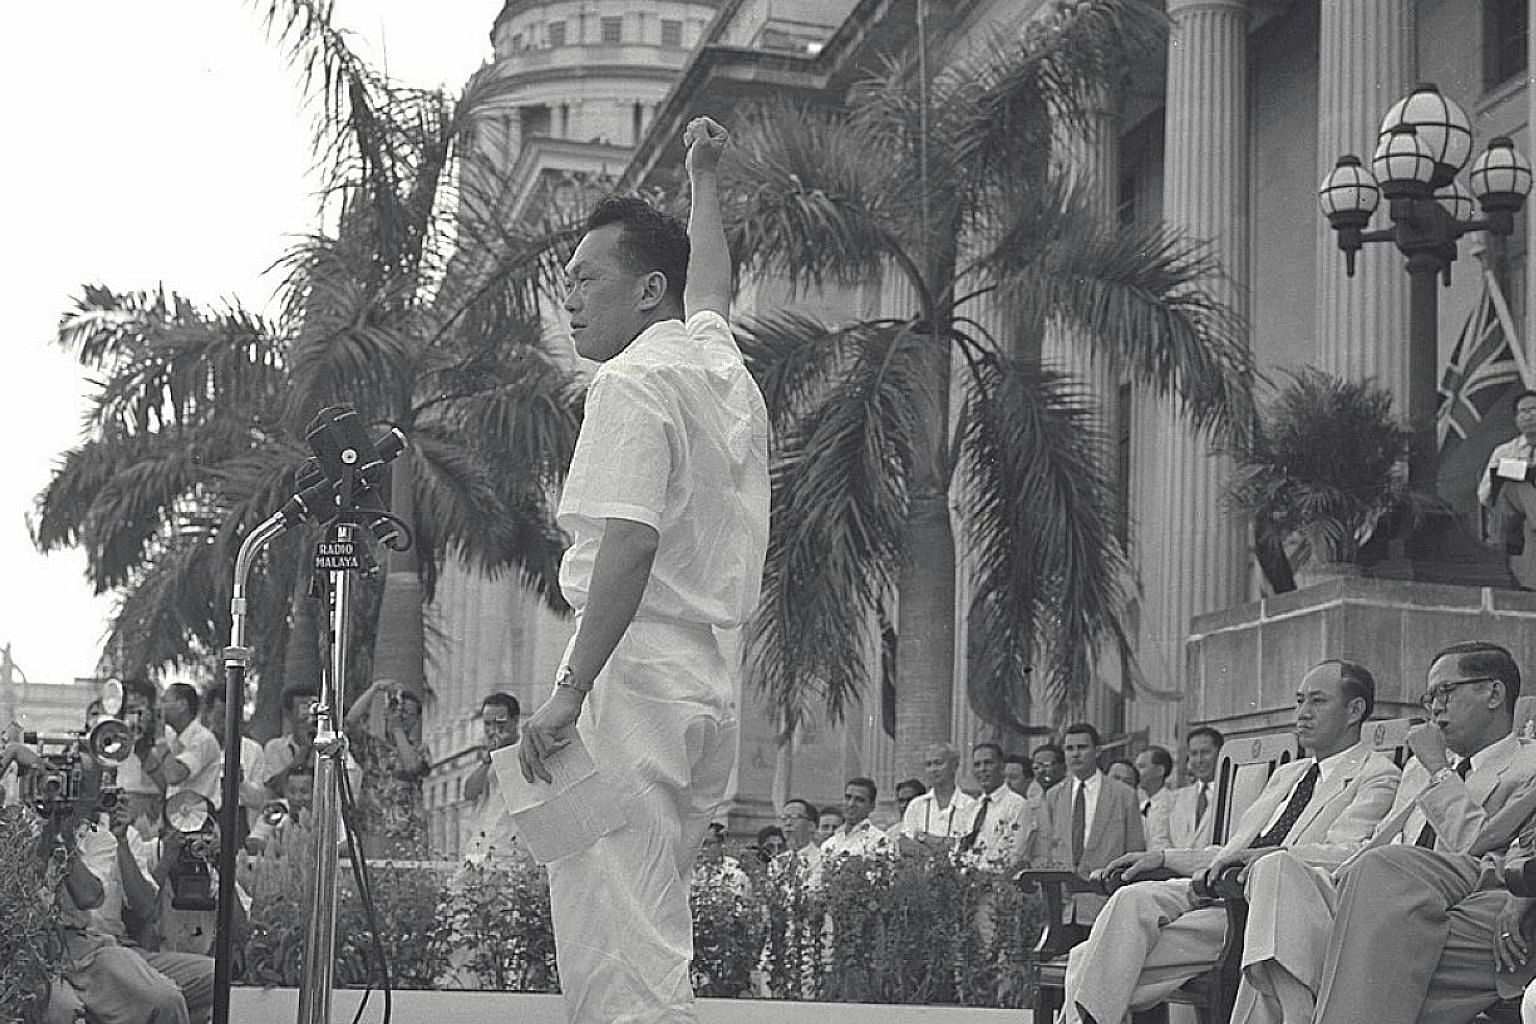 Mr Lee giving a speech at the City Hall steps in April 1957. A source told the CIA that Mr Lee was considering leaving the PAP to start a new party with the Labour Front's Mr Lim (right).